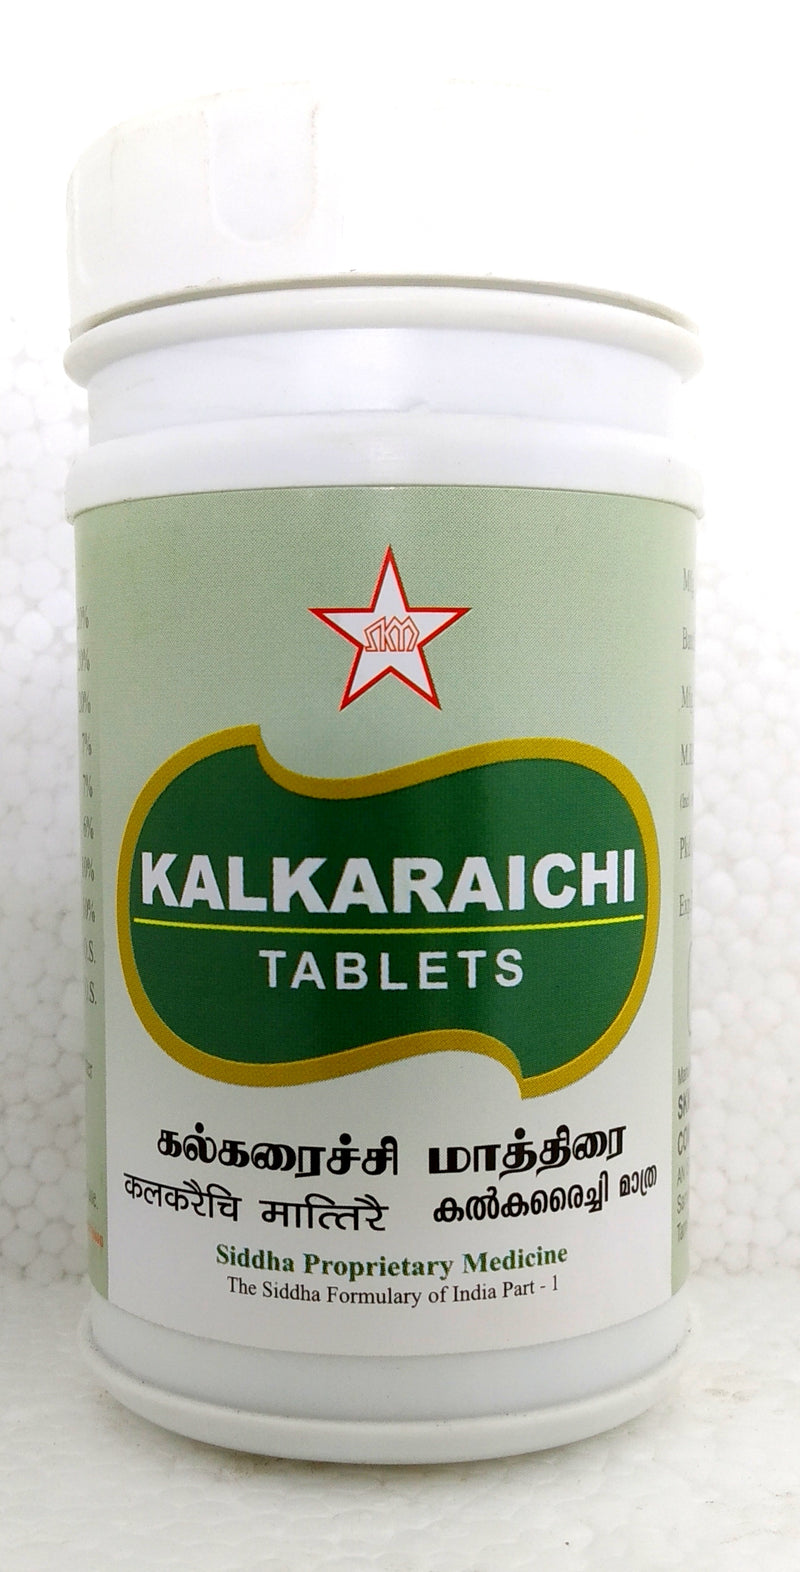 SKM Kalkaraichi Tablets 100Tablets (Siddha) - Ayush Care